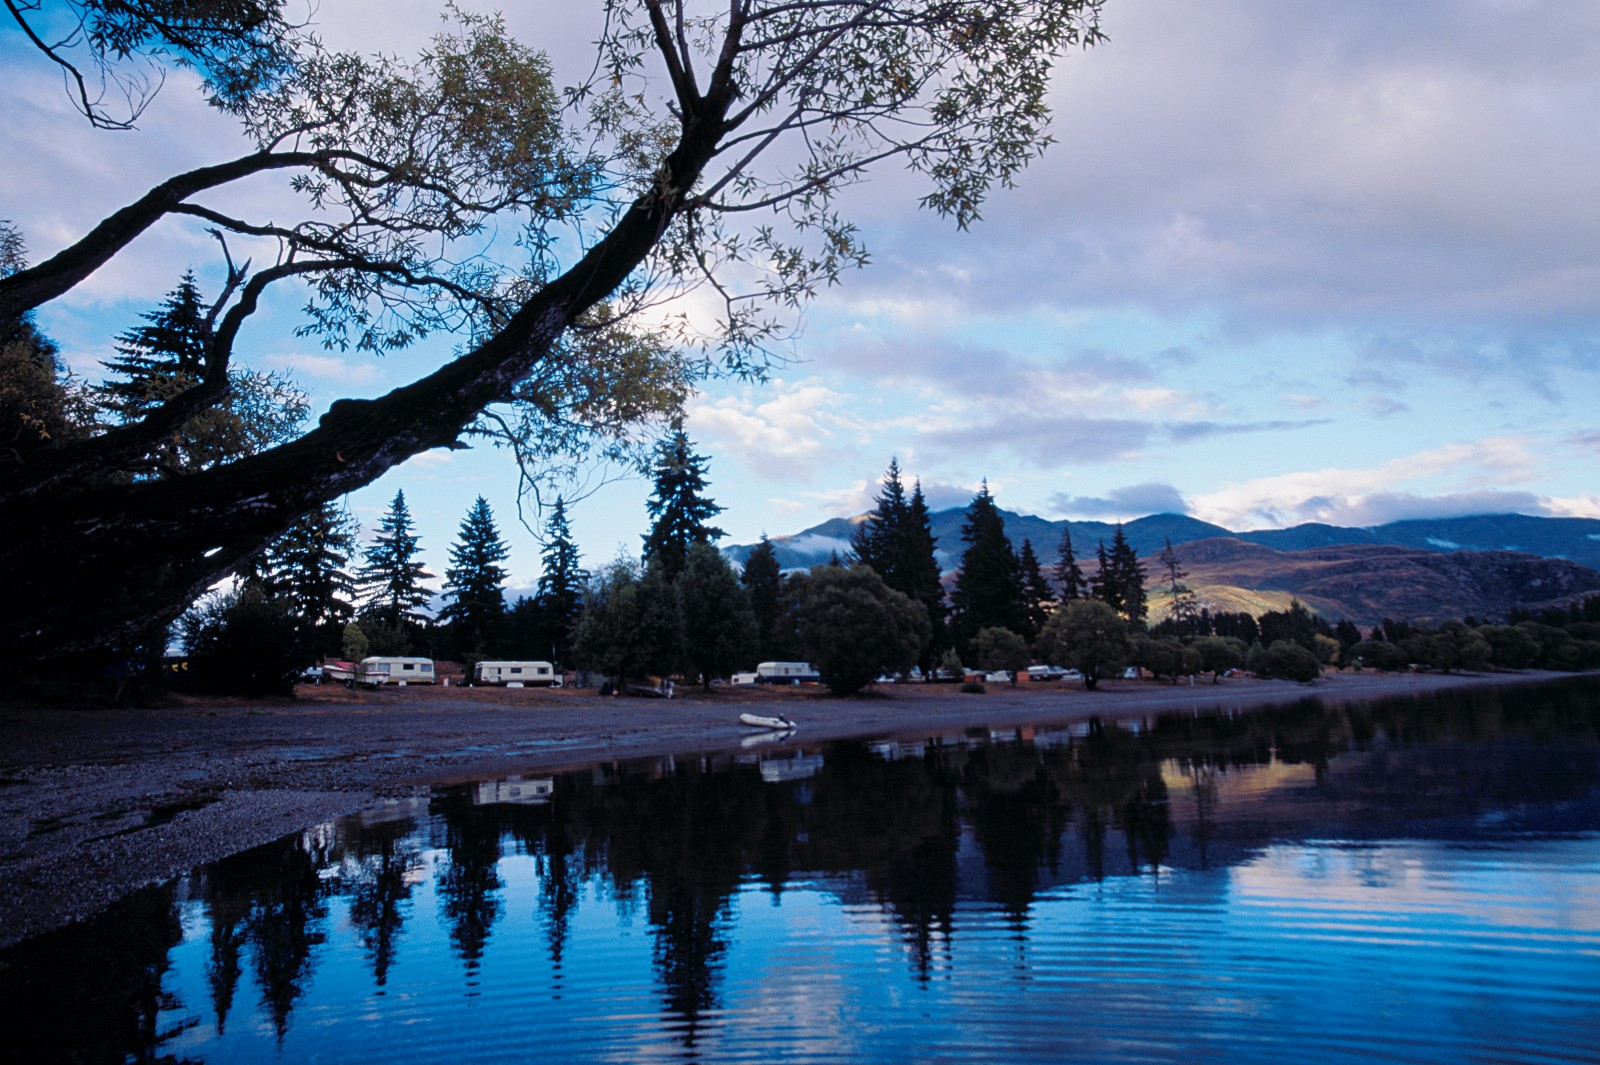 """Glendu Bay, beside Lake Wanaka, is a large and very popular camp. Set up on land gifted by a local farmer in the 1930s, it holds close to 2000 visitors at the height of summer. Chris Illingworth, the lease of the operation, says that 90 per cent of campers return year after year and a few have been coming for 60 years. """"It's not just a camp, but also a busy store. It's really a small town. And in addition to the people, tents and vehicles, there are 300-400 boats! We have a staff of 18 at the peak of the season."""""""